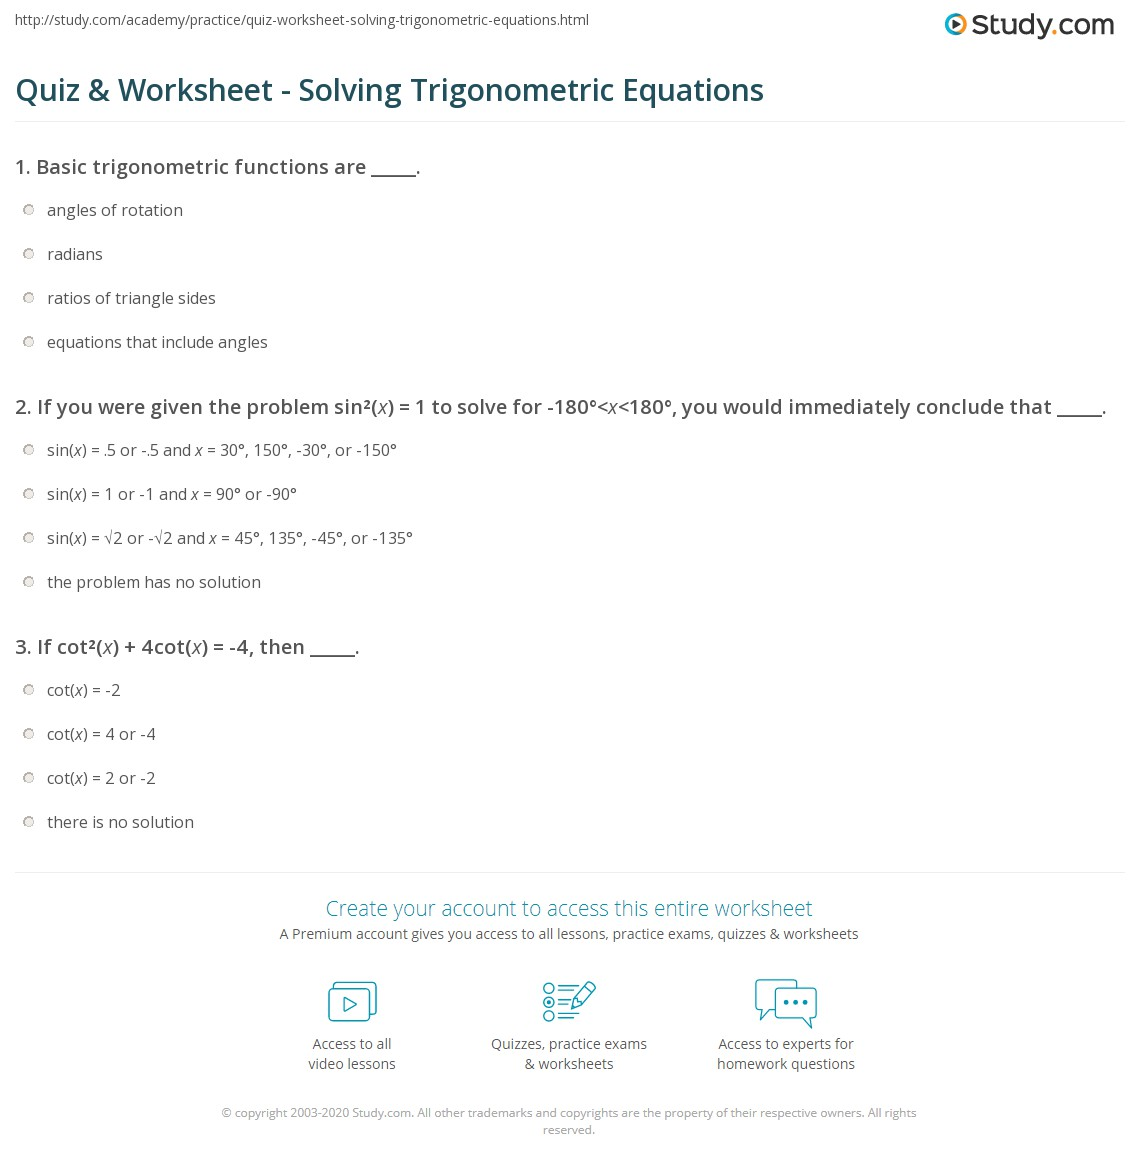 Worksheets Trigonometry Practice Worksheets quiz worksheet solving trigonometric equations study com print how to solve practice problems worksheet